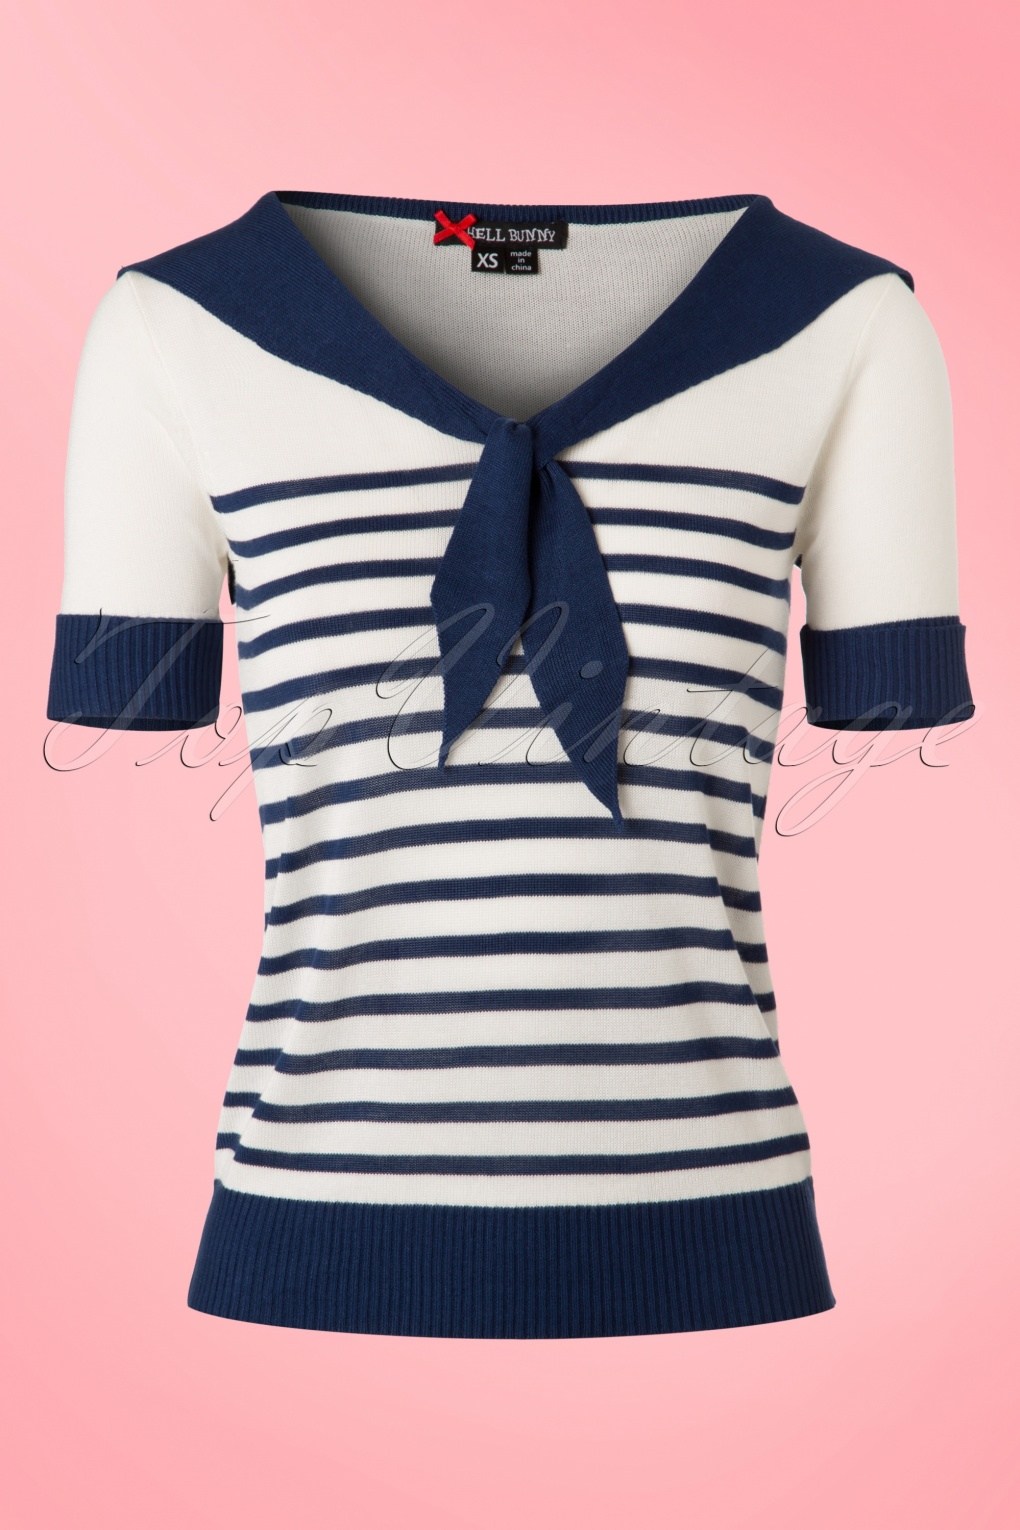 1950s Rockabilly & Pinup Tops, Shirts, Blouses 50s Coco Sailor Top in Navy and Ivory £26.02 AT vintagedancer.com